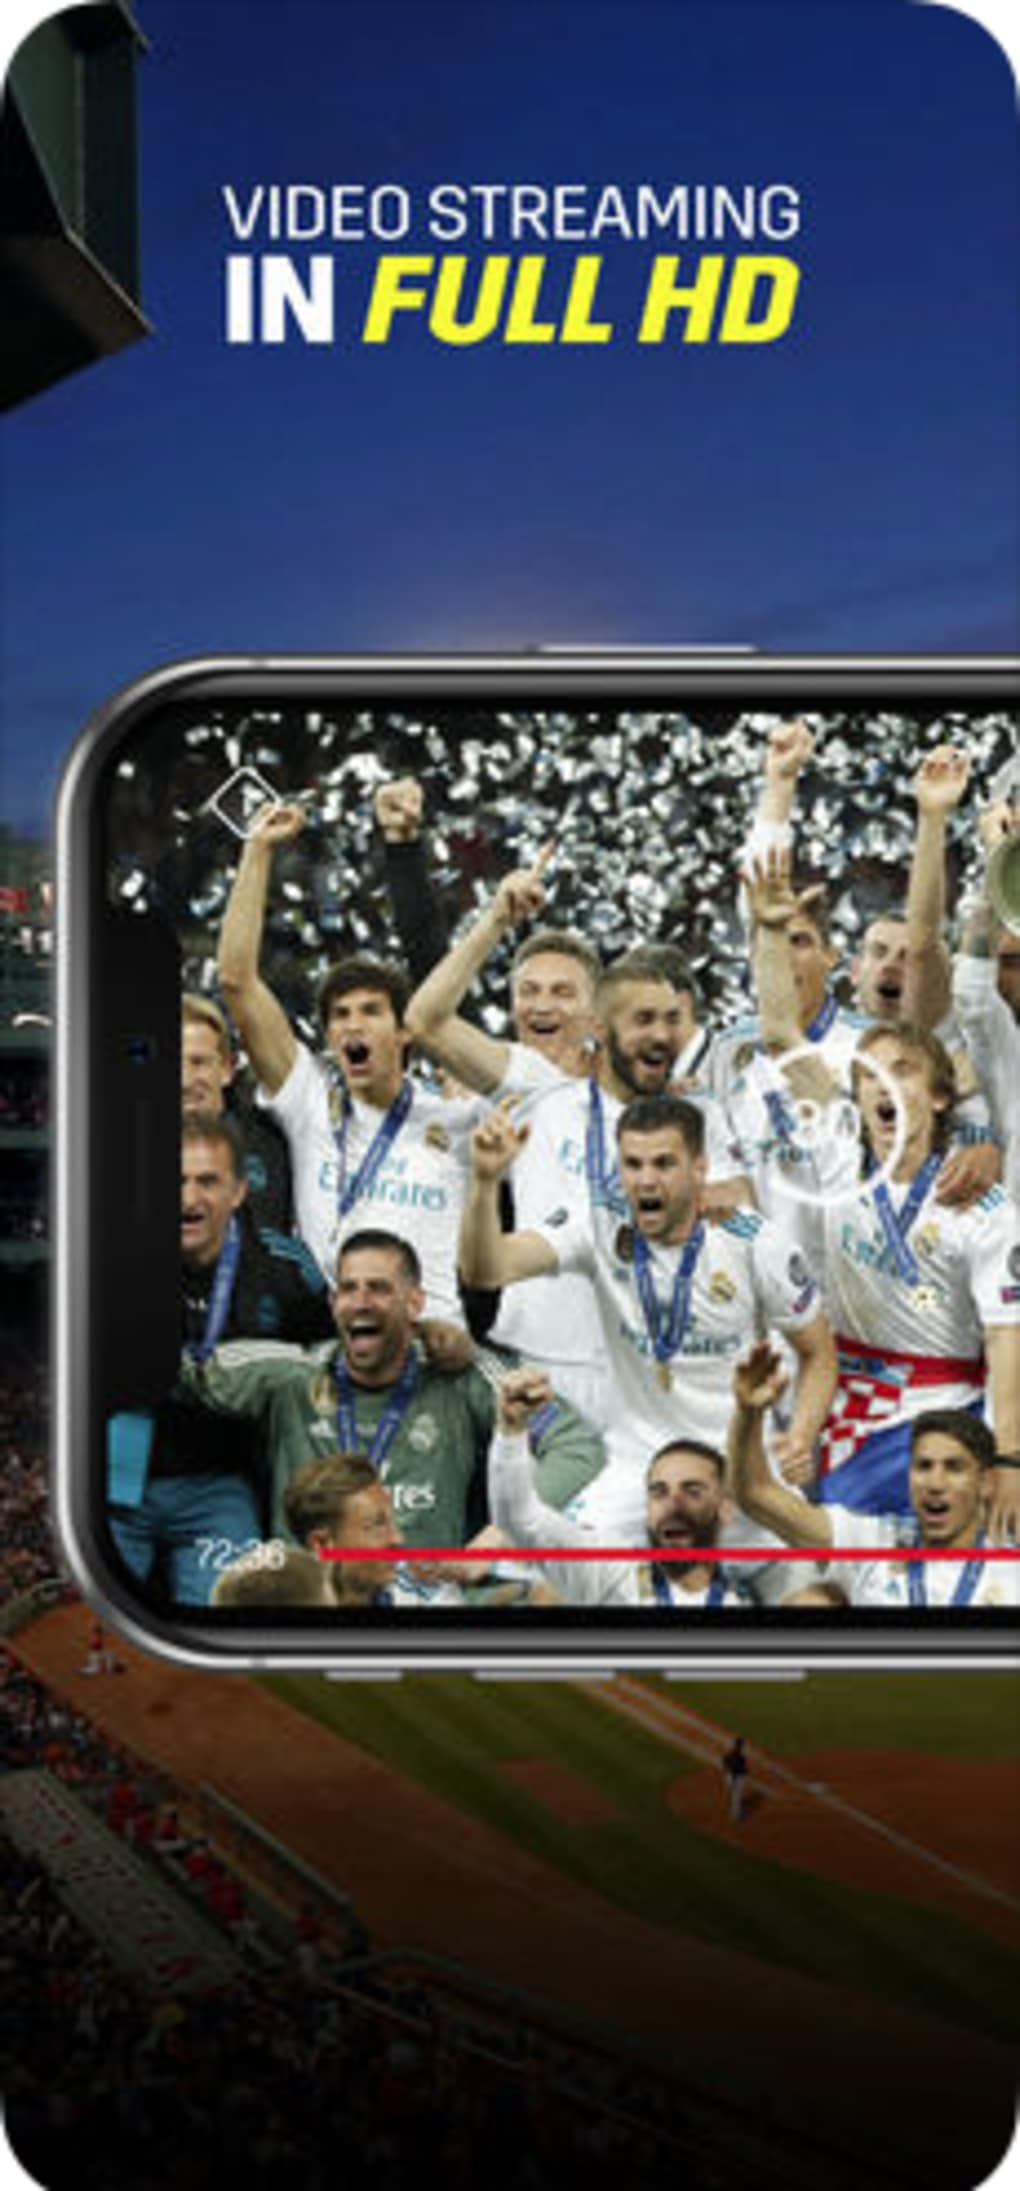 DAZN Live Sports Streaming for iPhone - Download